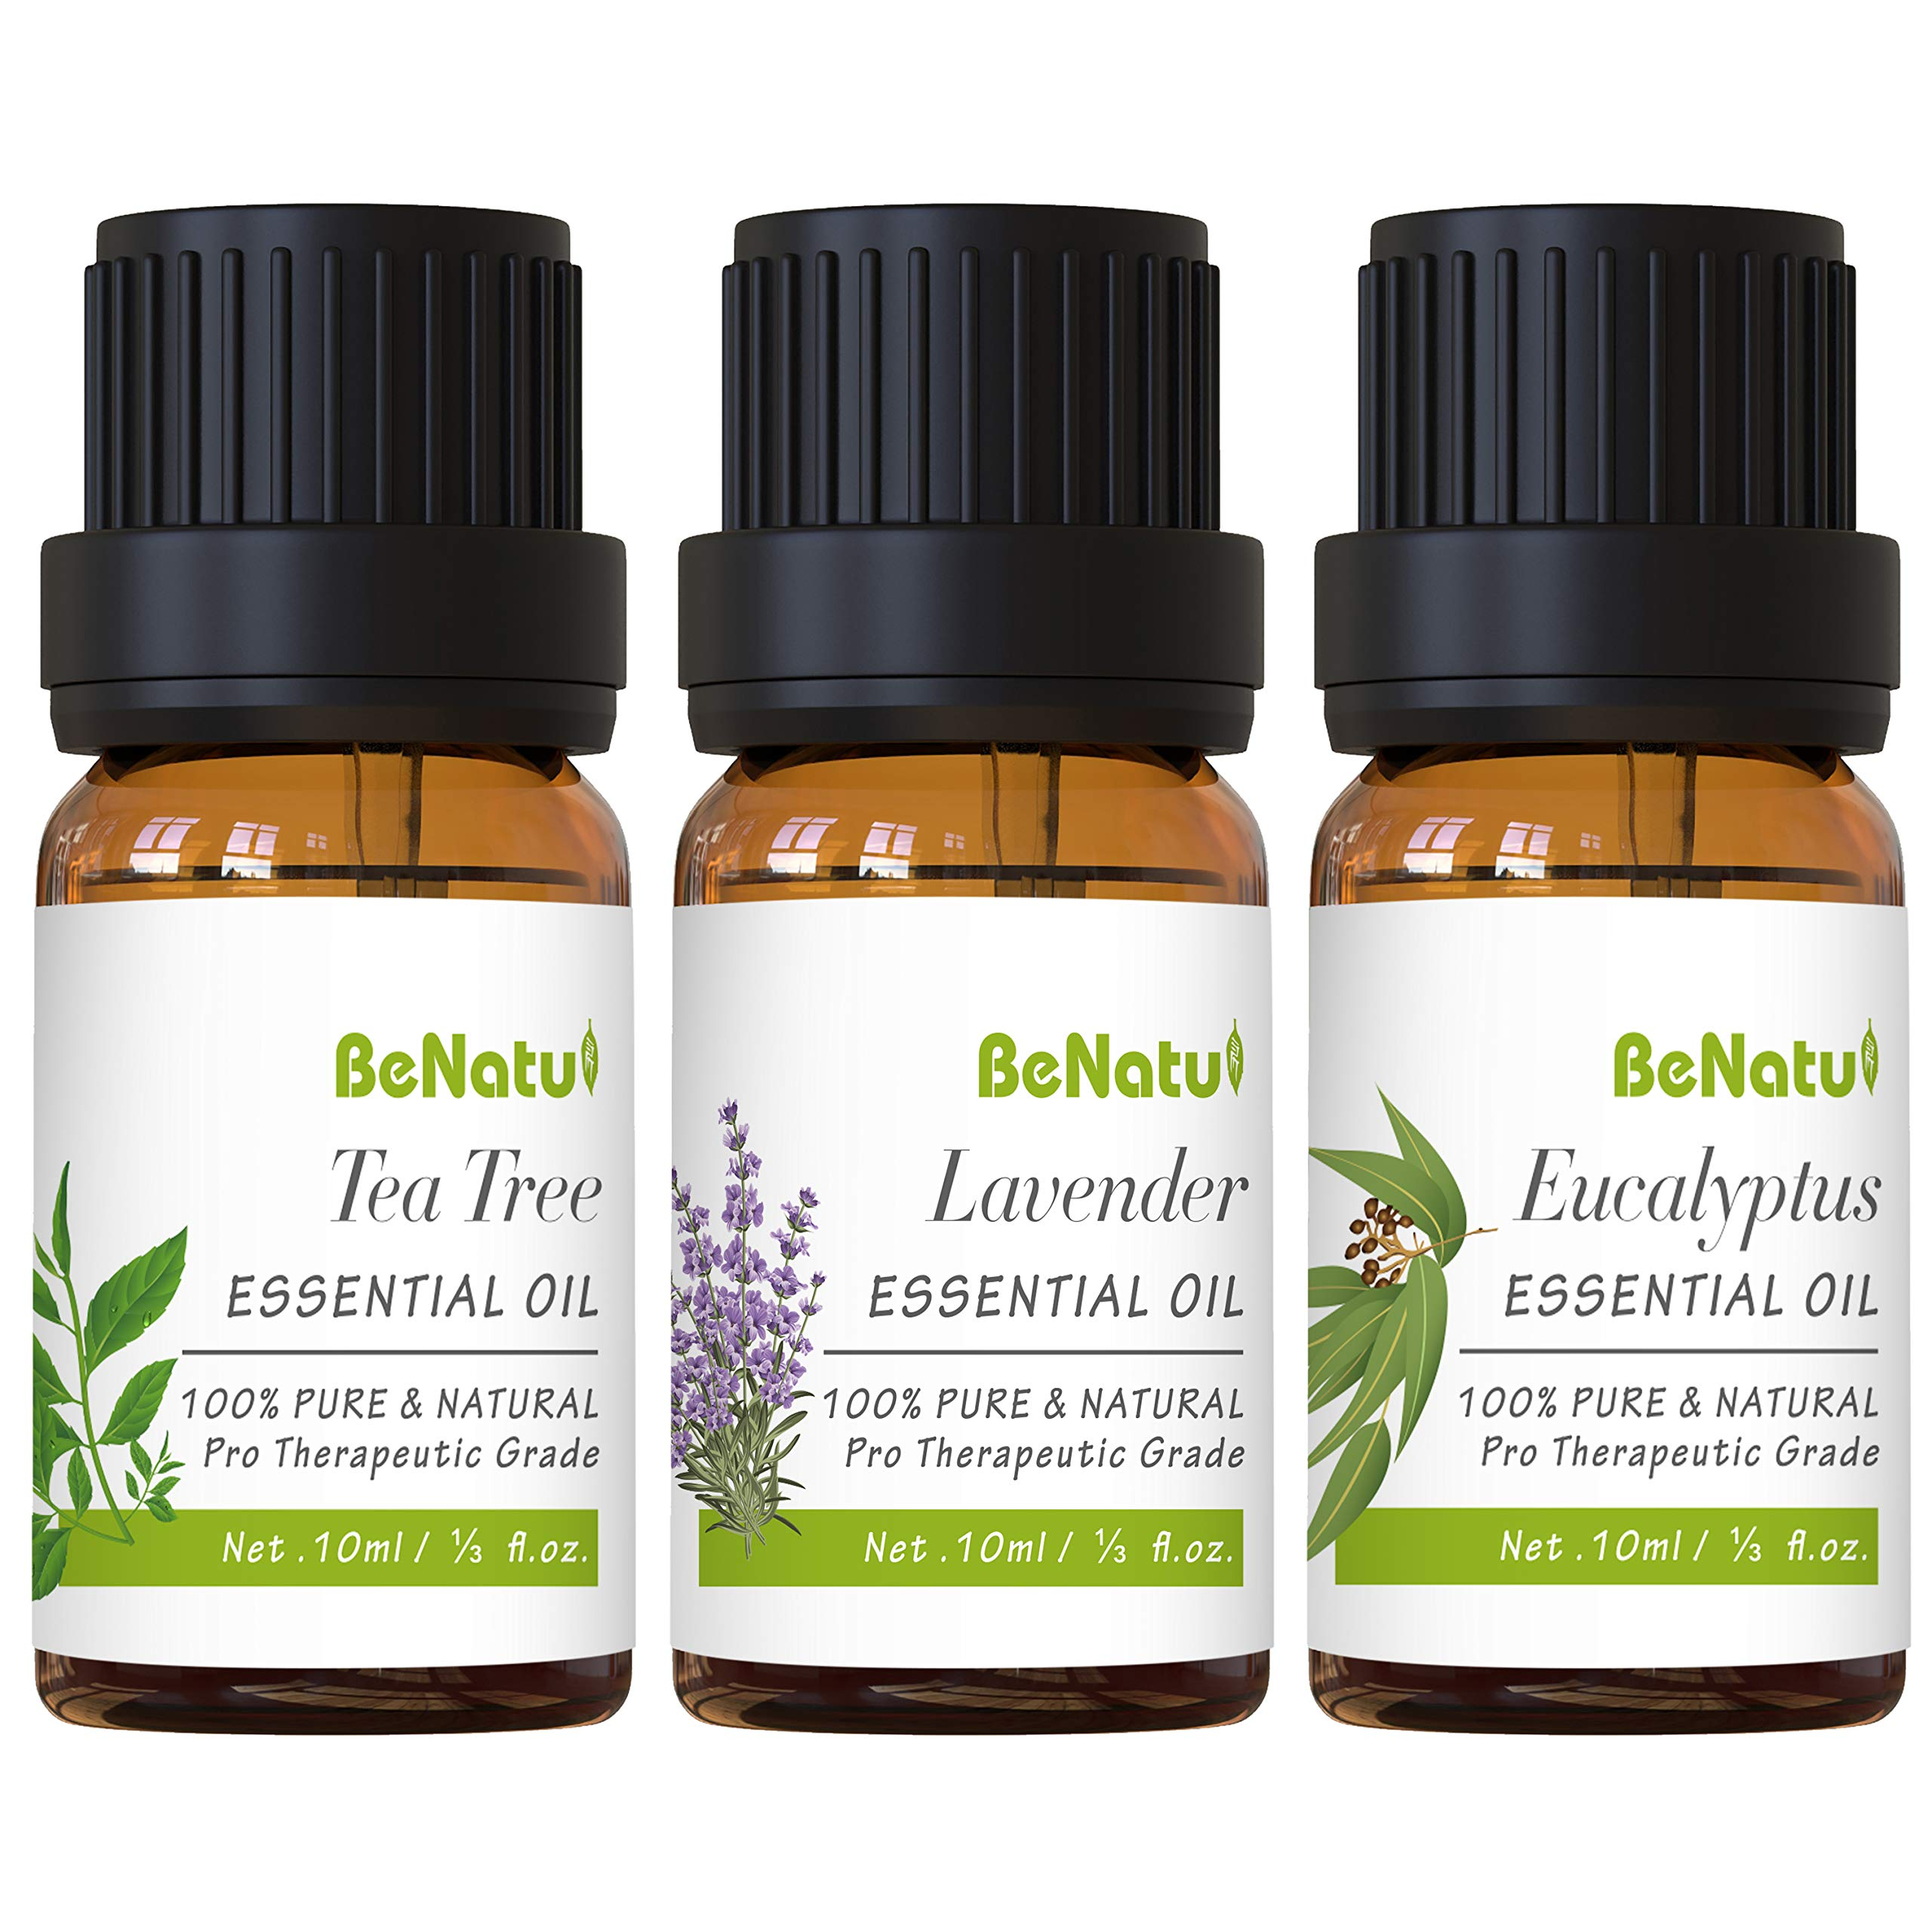 Essential Oils Set (Tea Tree, Lavender, Eucalyptus) for Skin Care, Aromatherapy, Soap Making - Natural & Pure Diffuser Oil for Home, Stress Relief, Anti Acne - by Benatu